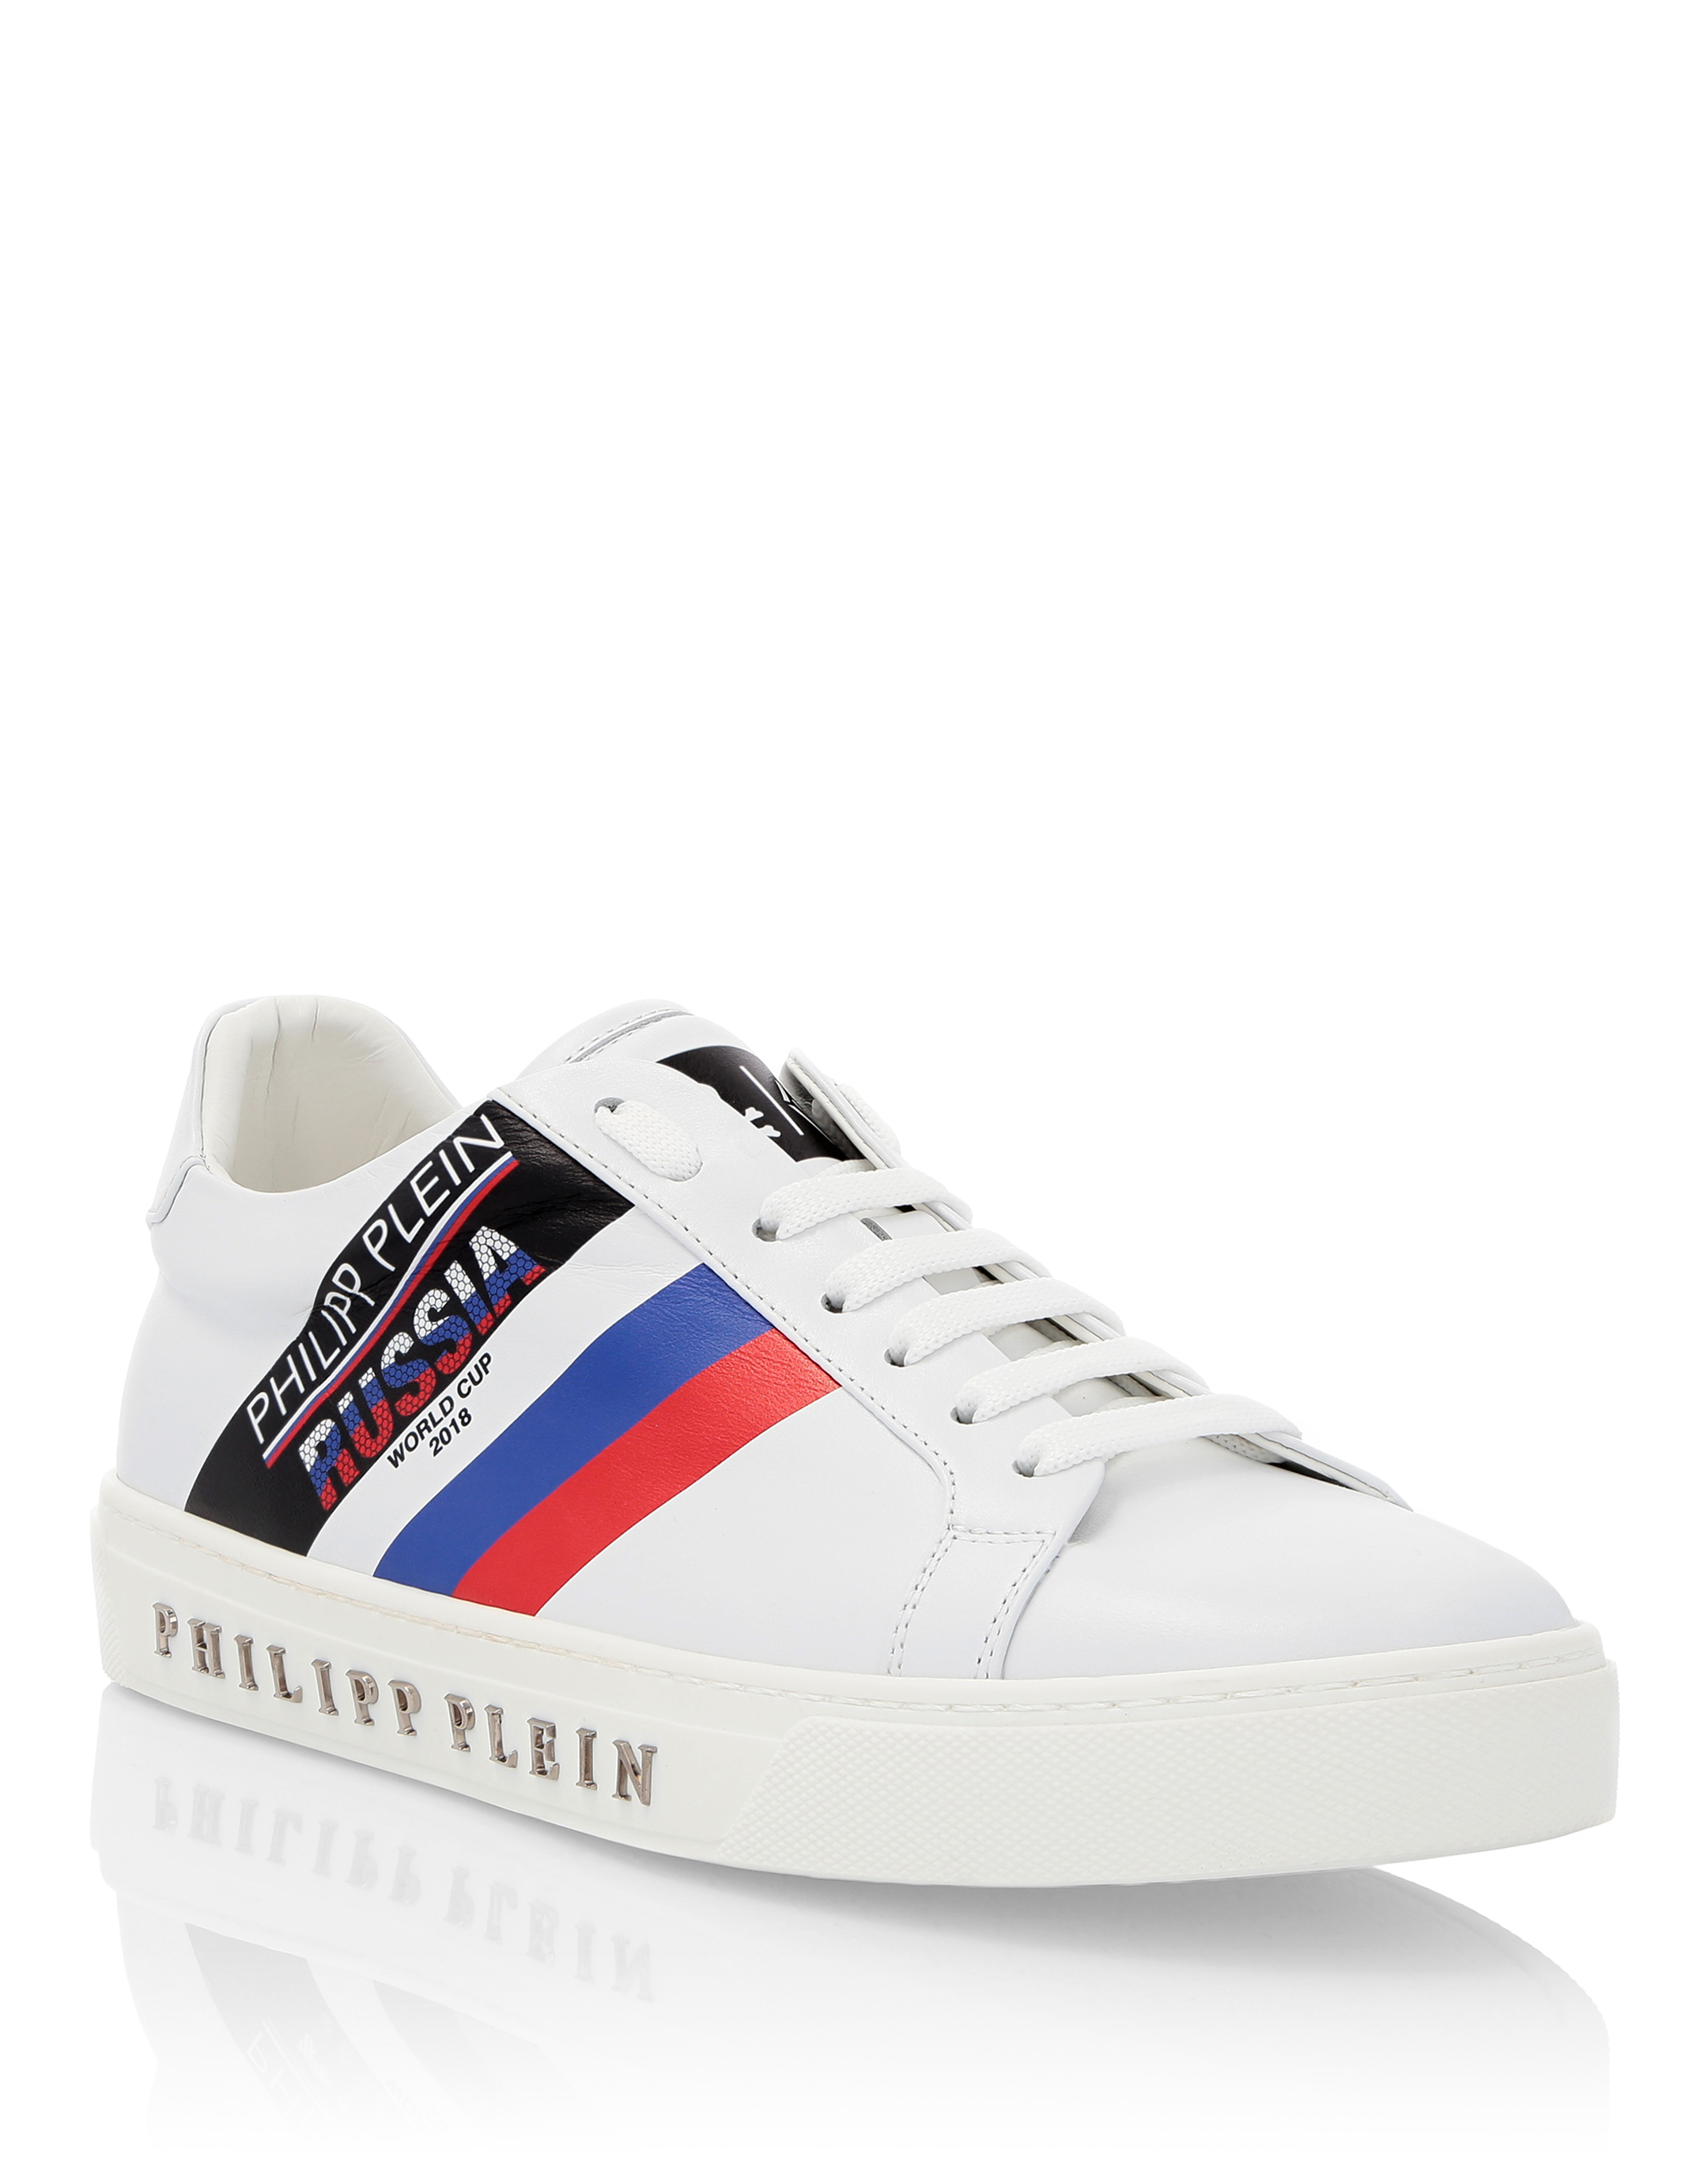 PHILIPP PLEIN LO-TOP SNEAKERS